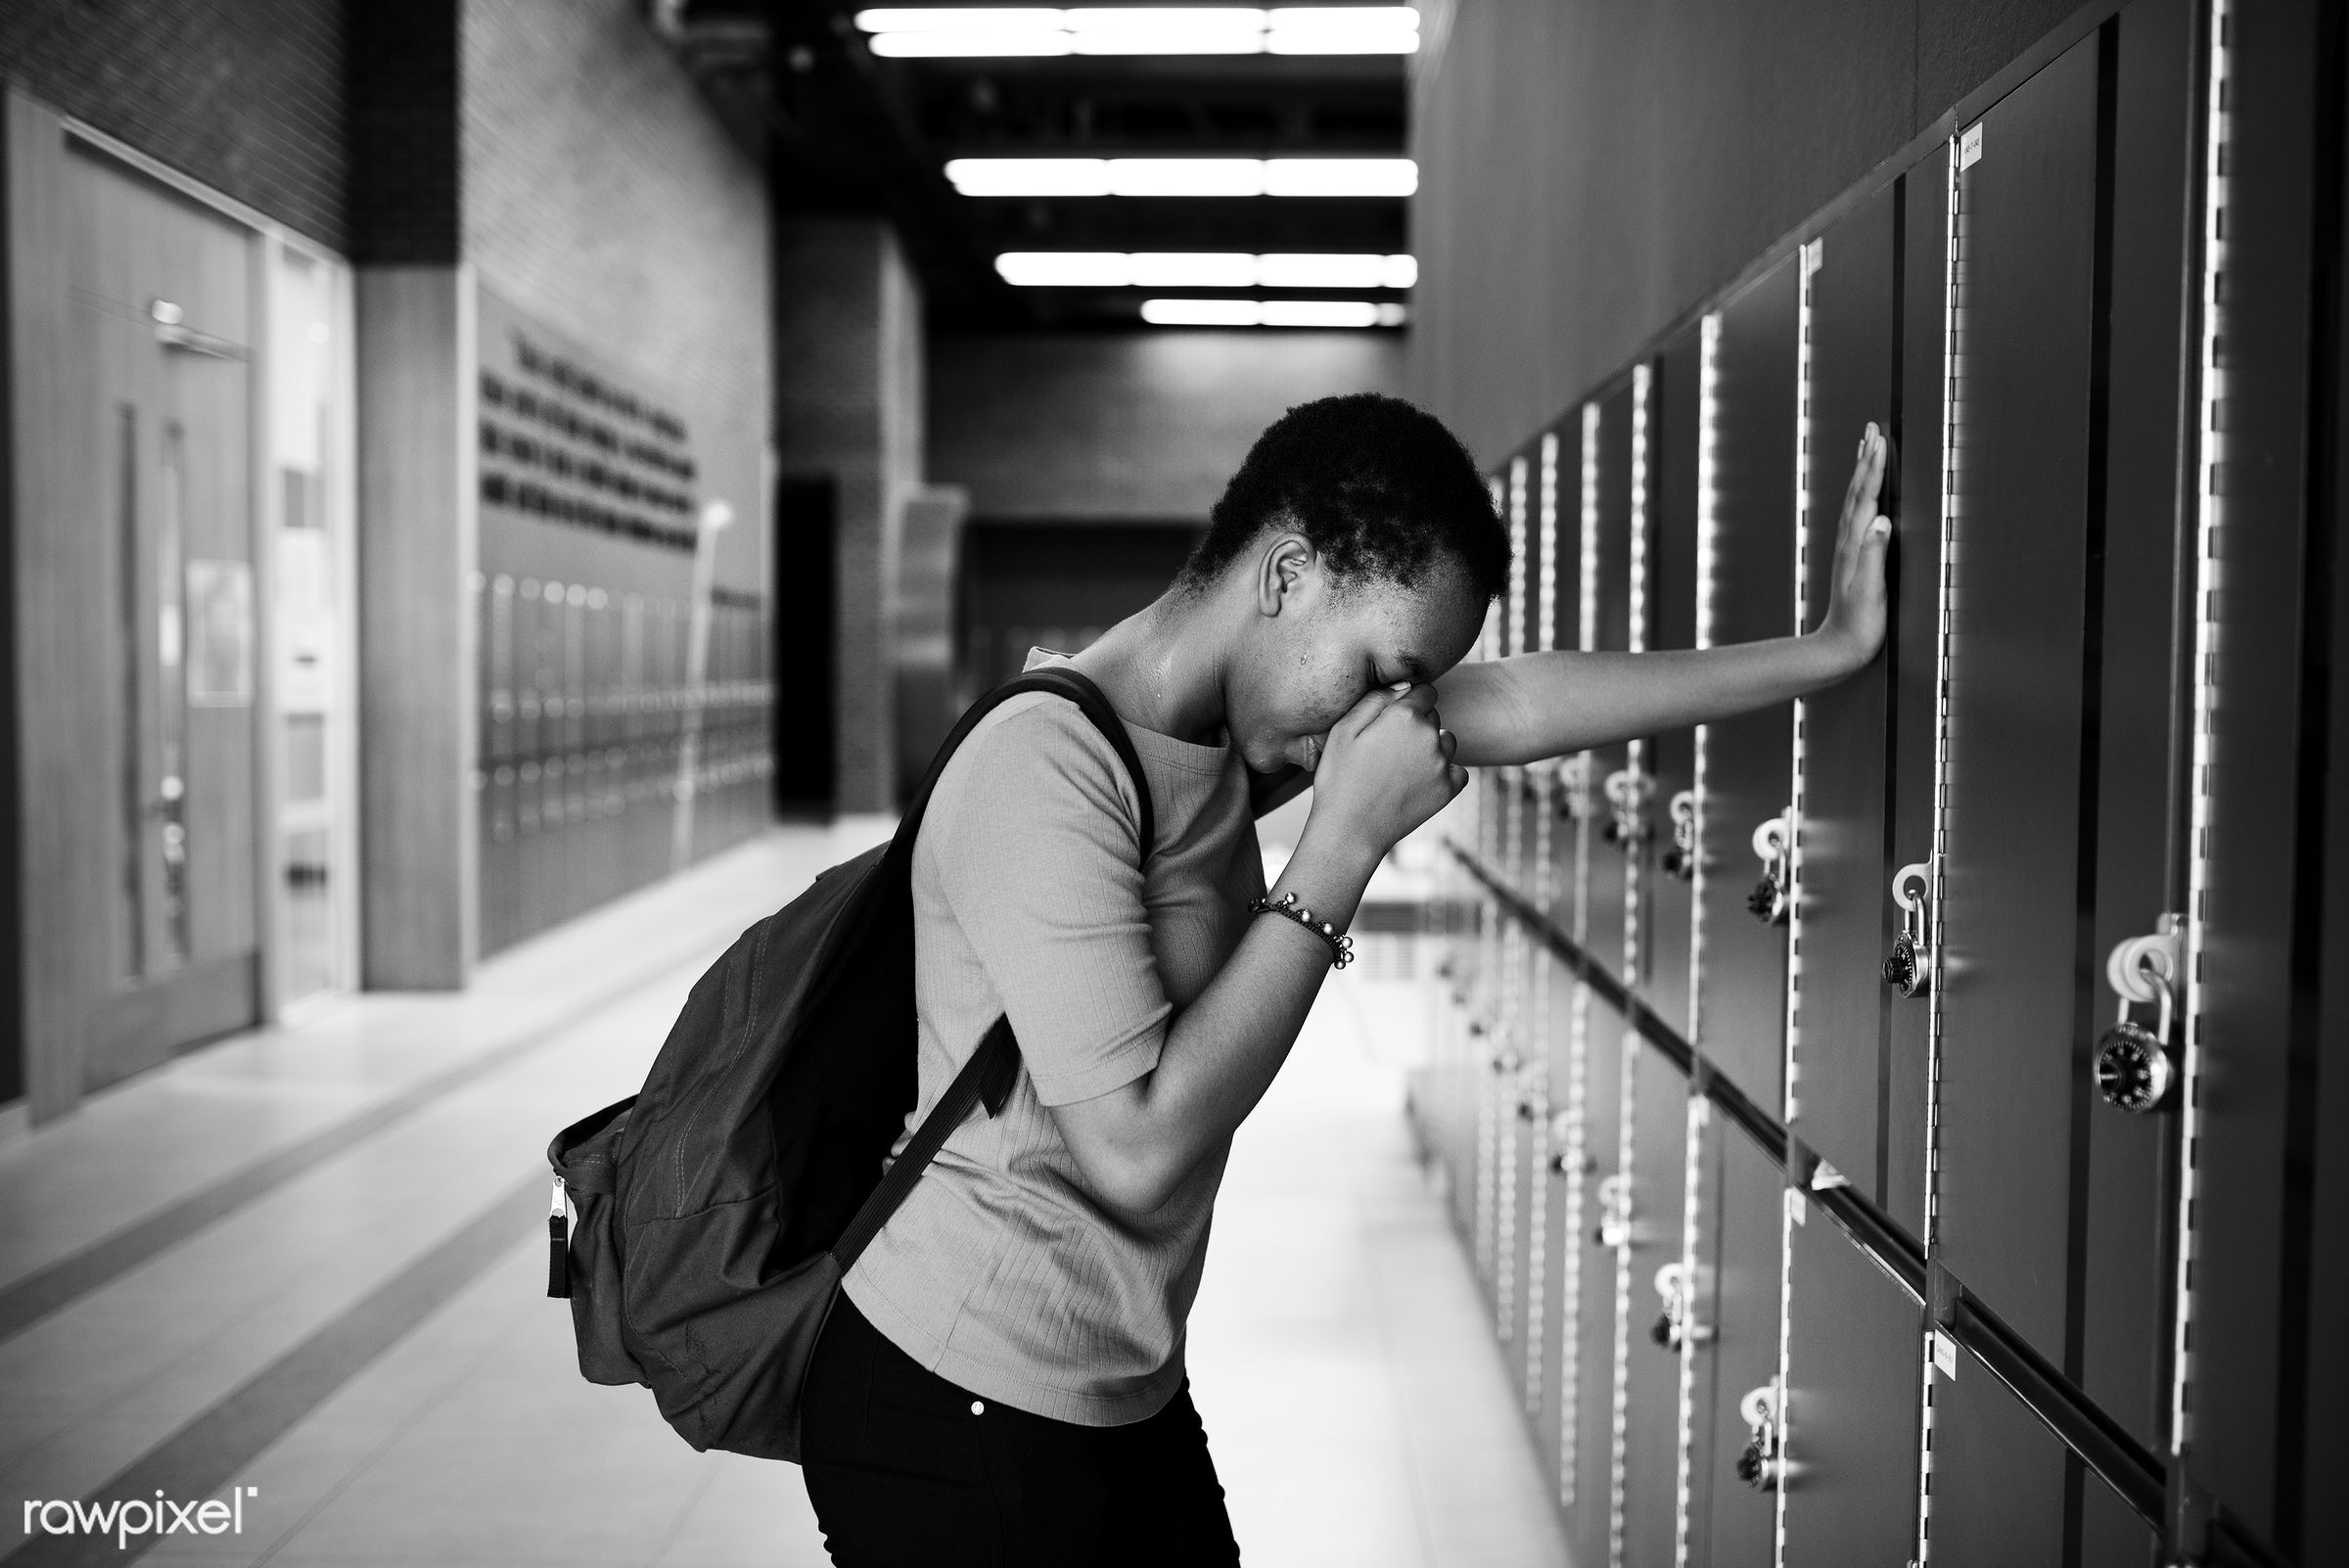 face, person, sad, corridor, girl, student, casual, backpack, alone, lonely, problems, high school, african descent, gesture...